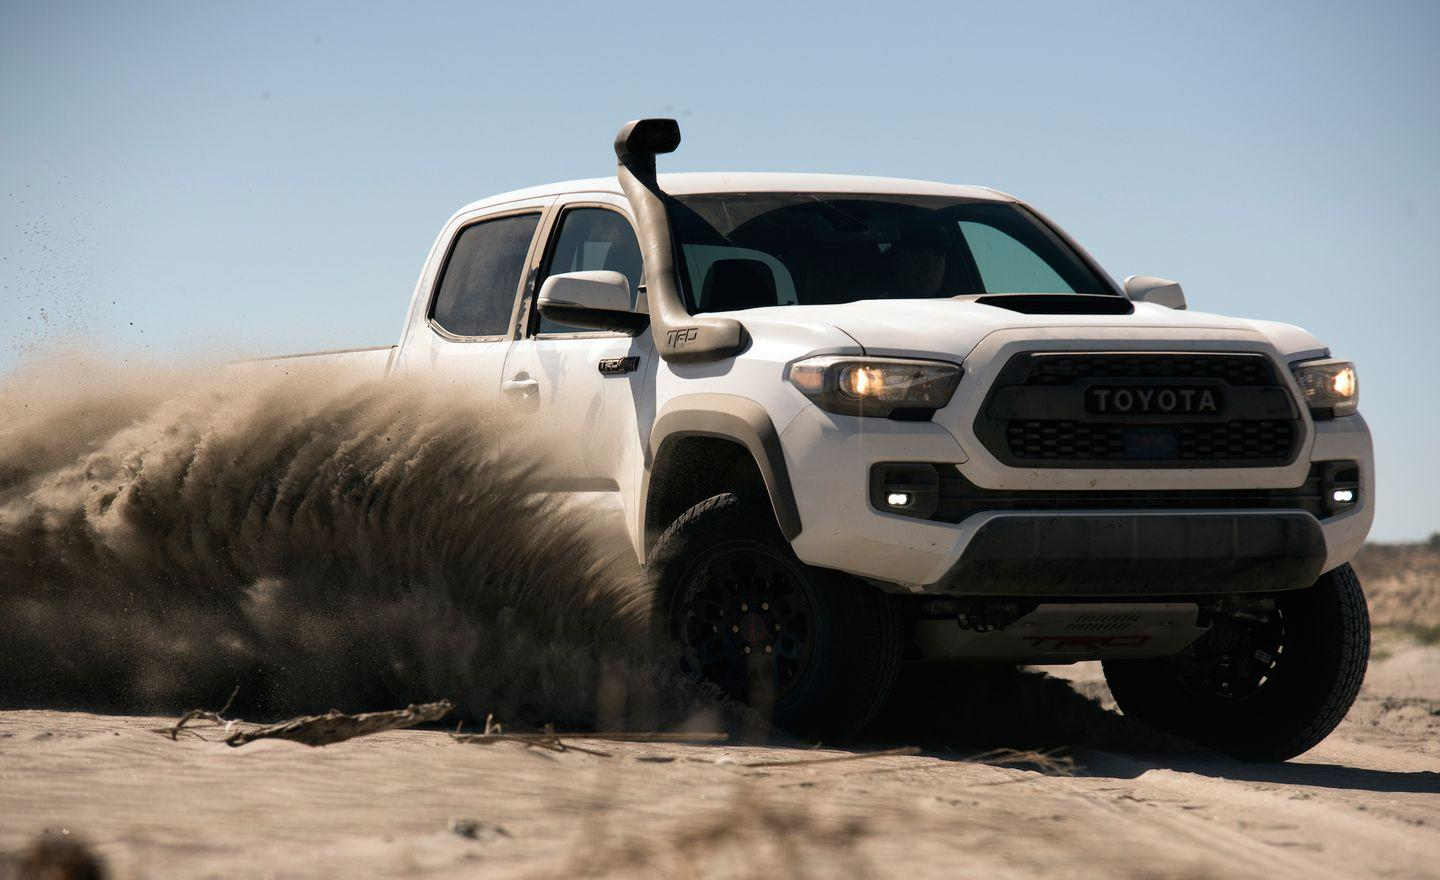 """<p>What's more bad-ass than an intake snorkel on a beefy off-roader? It's not purely for style, either-real off-roaders understand that keeping a steady supply of clean, dry air is crucial for an engine's health. It only takes a few gulps of water to hydrolock an engine, and inhaling sand and dirt expedites the wear of its internal components. So whether you just want to look the part or plan on traversing some seriously rugged terrain, Toyota has you covered with<a href=""""https://www.caranddriver.com/news/a16751417/2019-toyota-tacoma-trd-pro-continues-to-rule-dirt-professionally/"""" rel=""""nofollow noopener"""" target=""""_blank"""" data-ylk=""""slk:its new-for-2019 TRD intake snorkel option"""" class=""""link rapid-noclick-resp""""> its new-for-2019 TRD intake snorkel option</a>.</p>"""